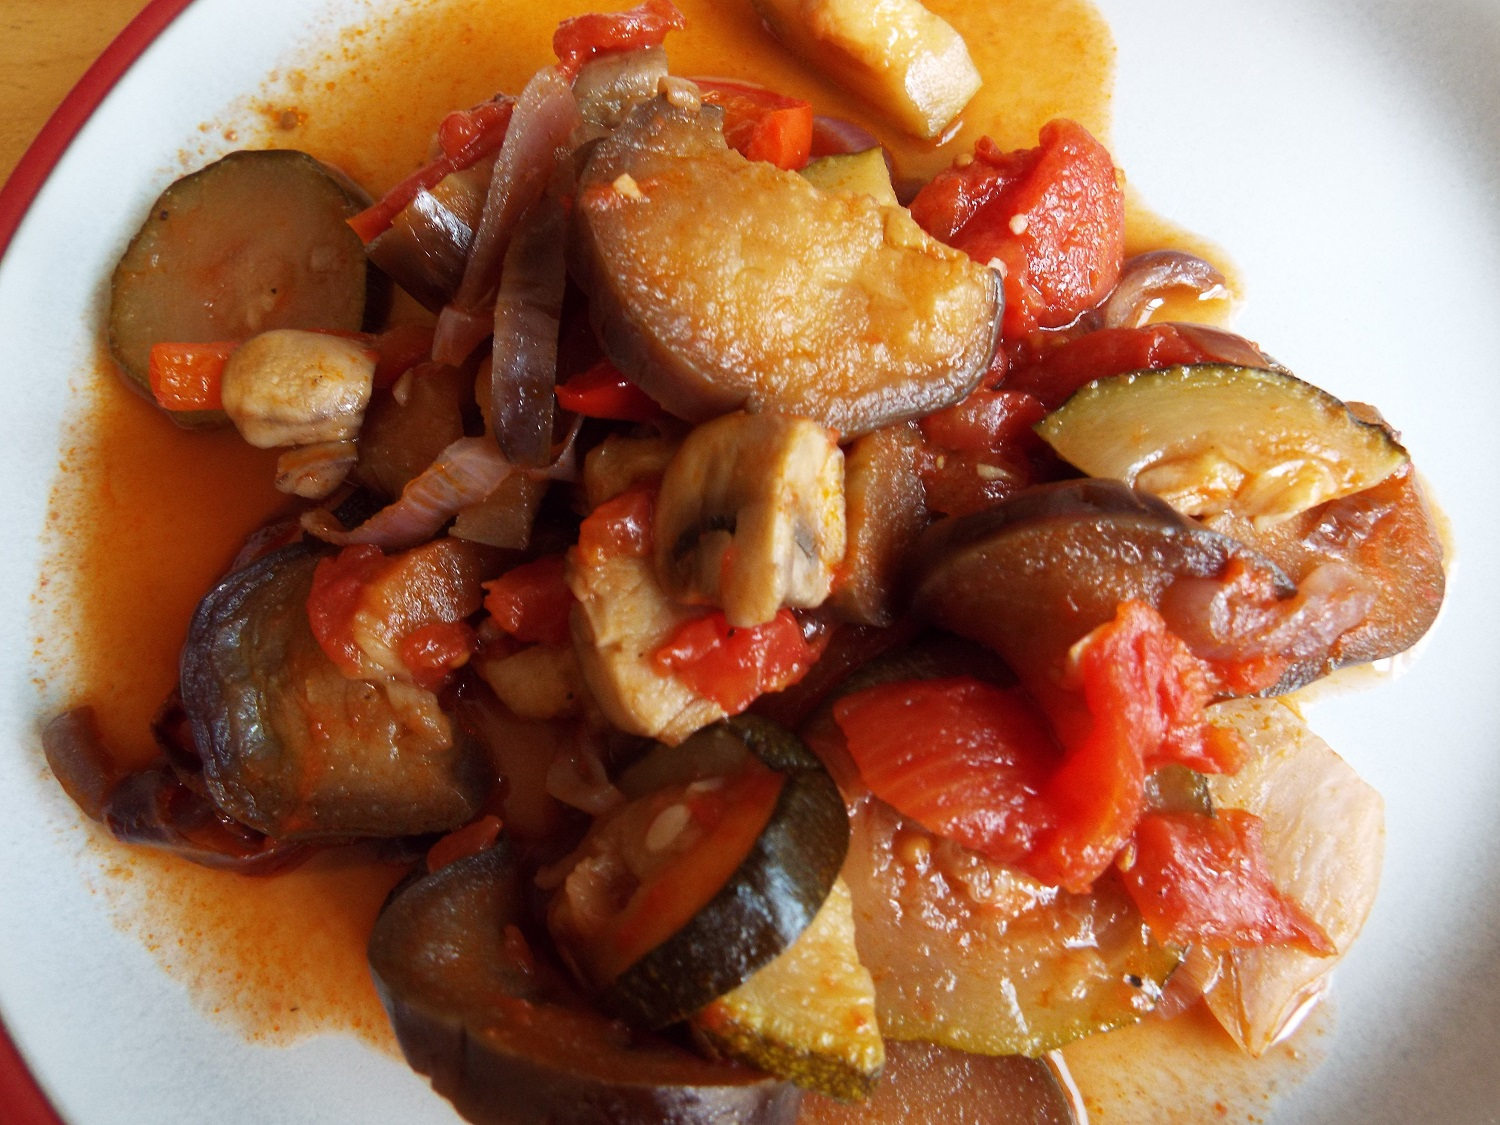 Ratatouille - Fry onions in oil a big pot and add chopped vegetables - aubergines (egg plant), courgettes (zucchini), peppers (capsicums), mushrooms, garlic, tinned tomatoes and seasoning.Add mixed herbs to taste.Simmer till tender.